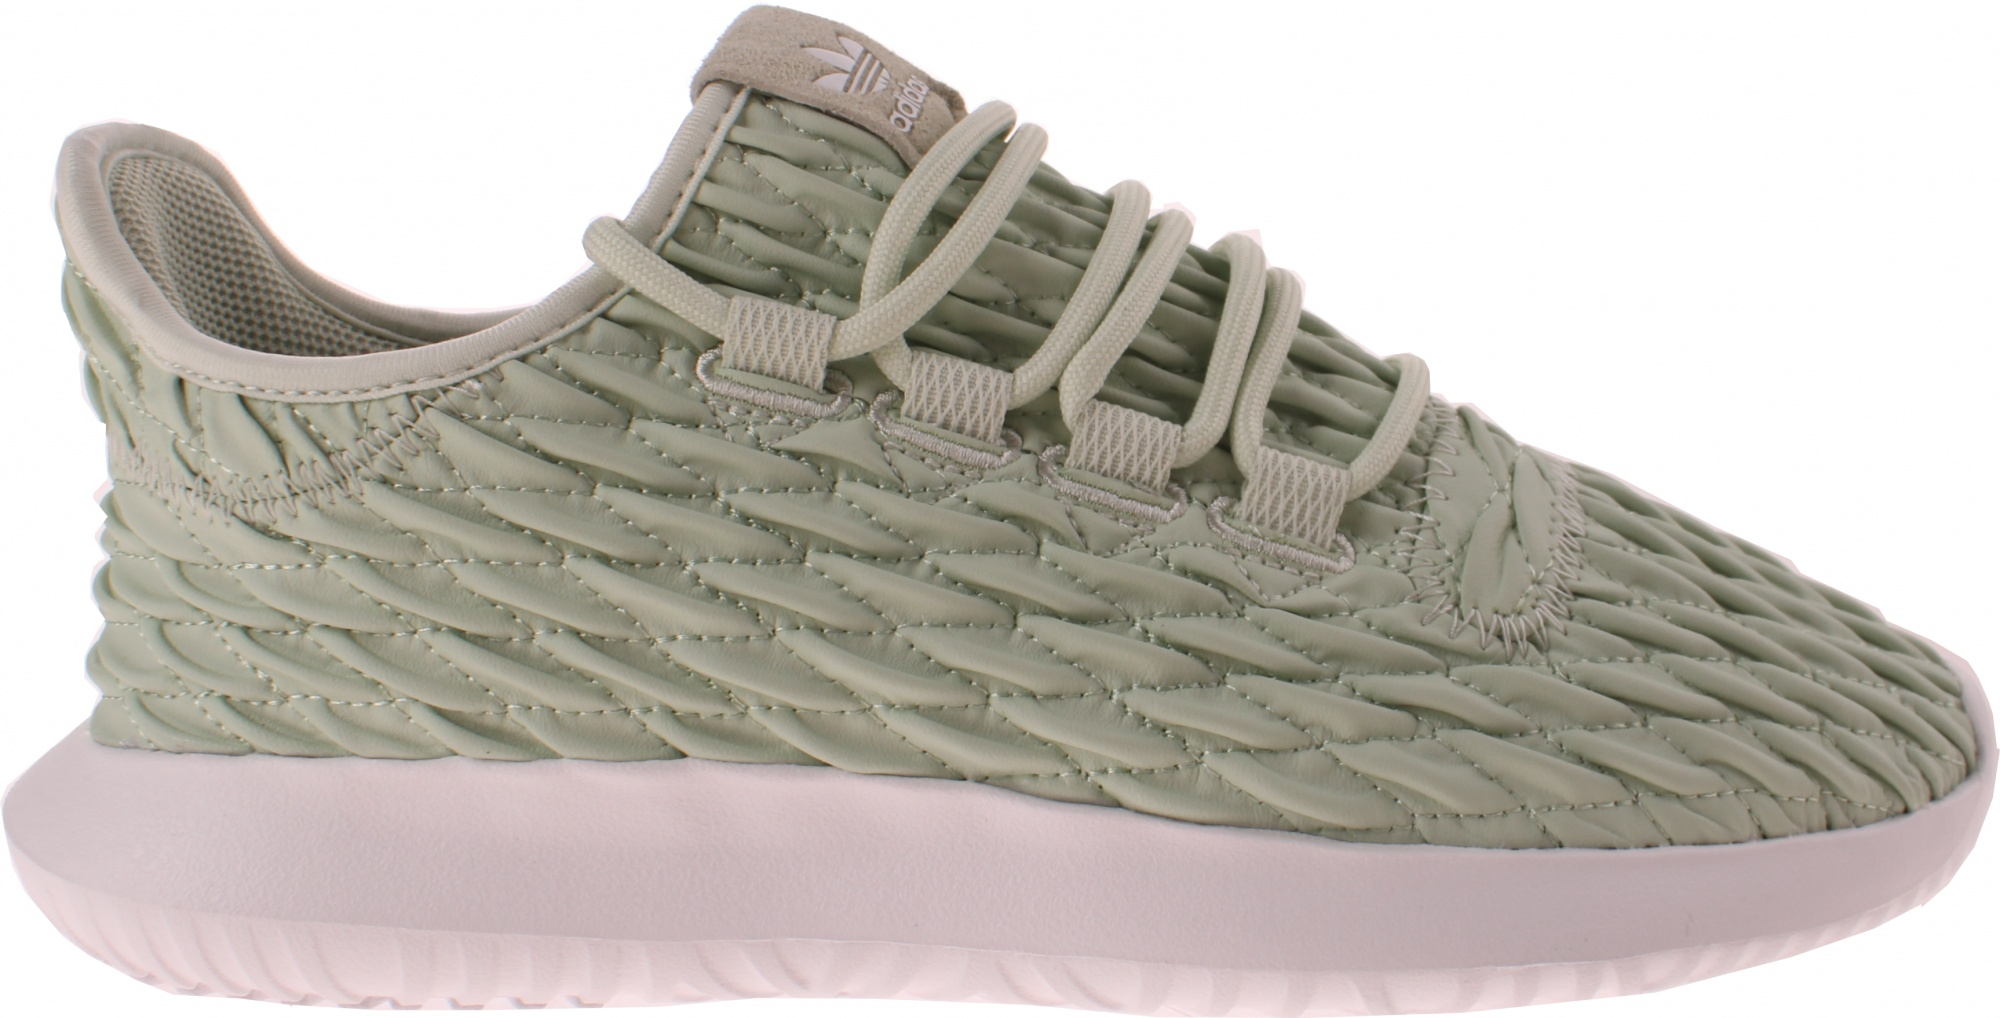 207a542a996 adidas sneakers Tubular Shadow ladies mint green - Internet ...